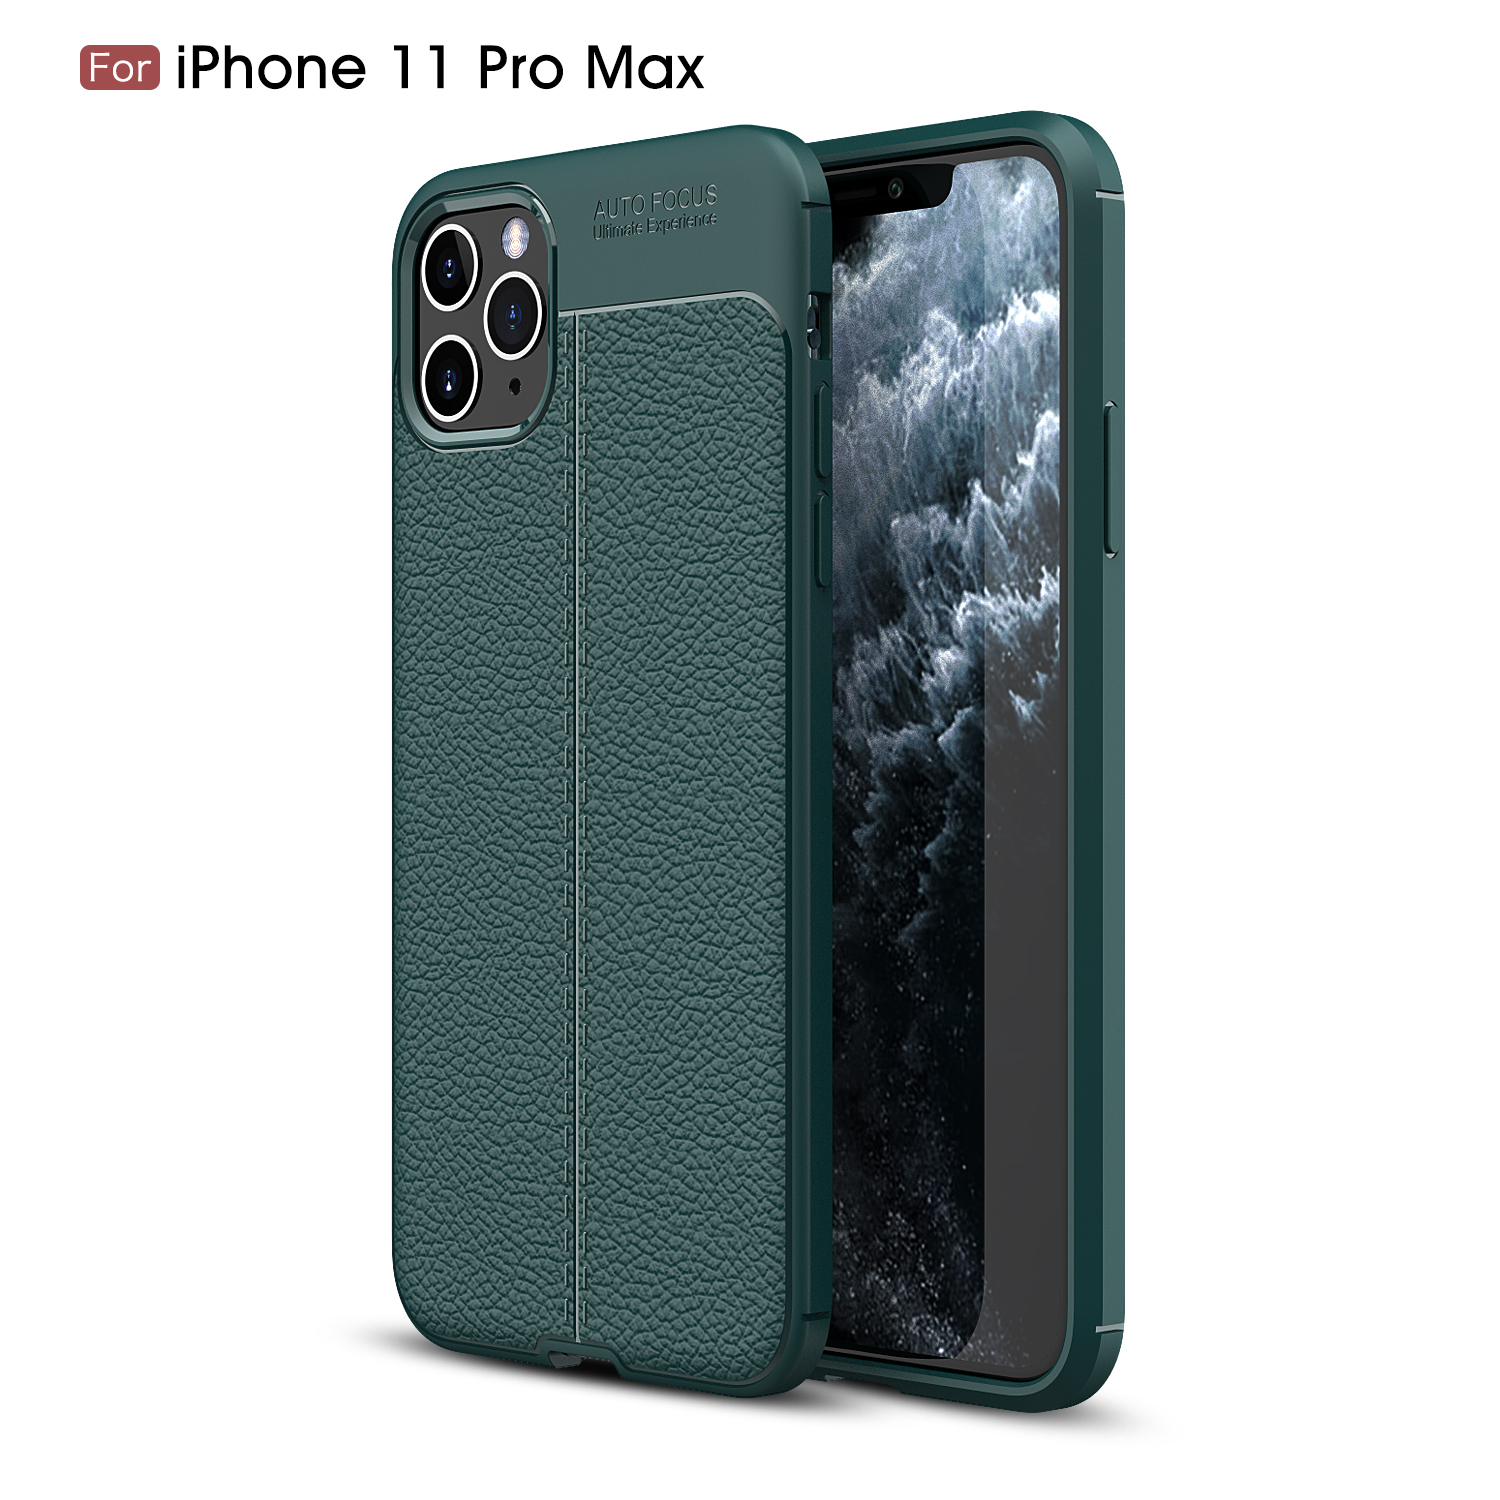 Hbb305ee503404570afa6e43f2078f1258 For iPhone 11 Pro Max Case 7 8 5S 6S Plus XR XS SE Apple Case Luxury Leather PU Soft Silicone Phone Back Cover For iPhone 11 Pro